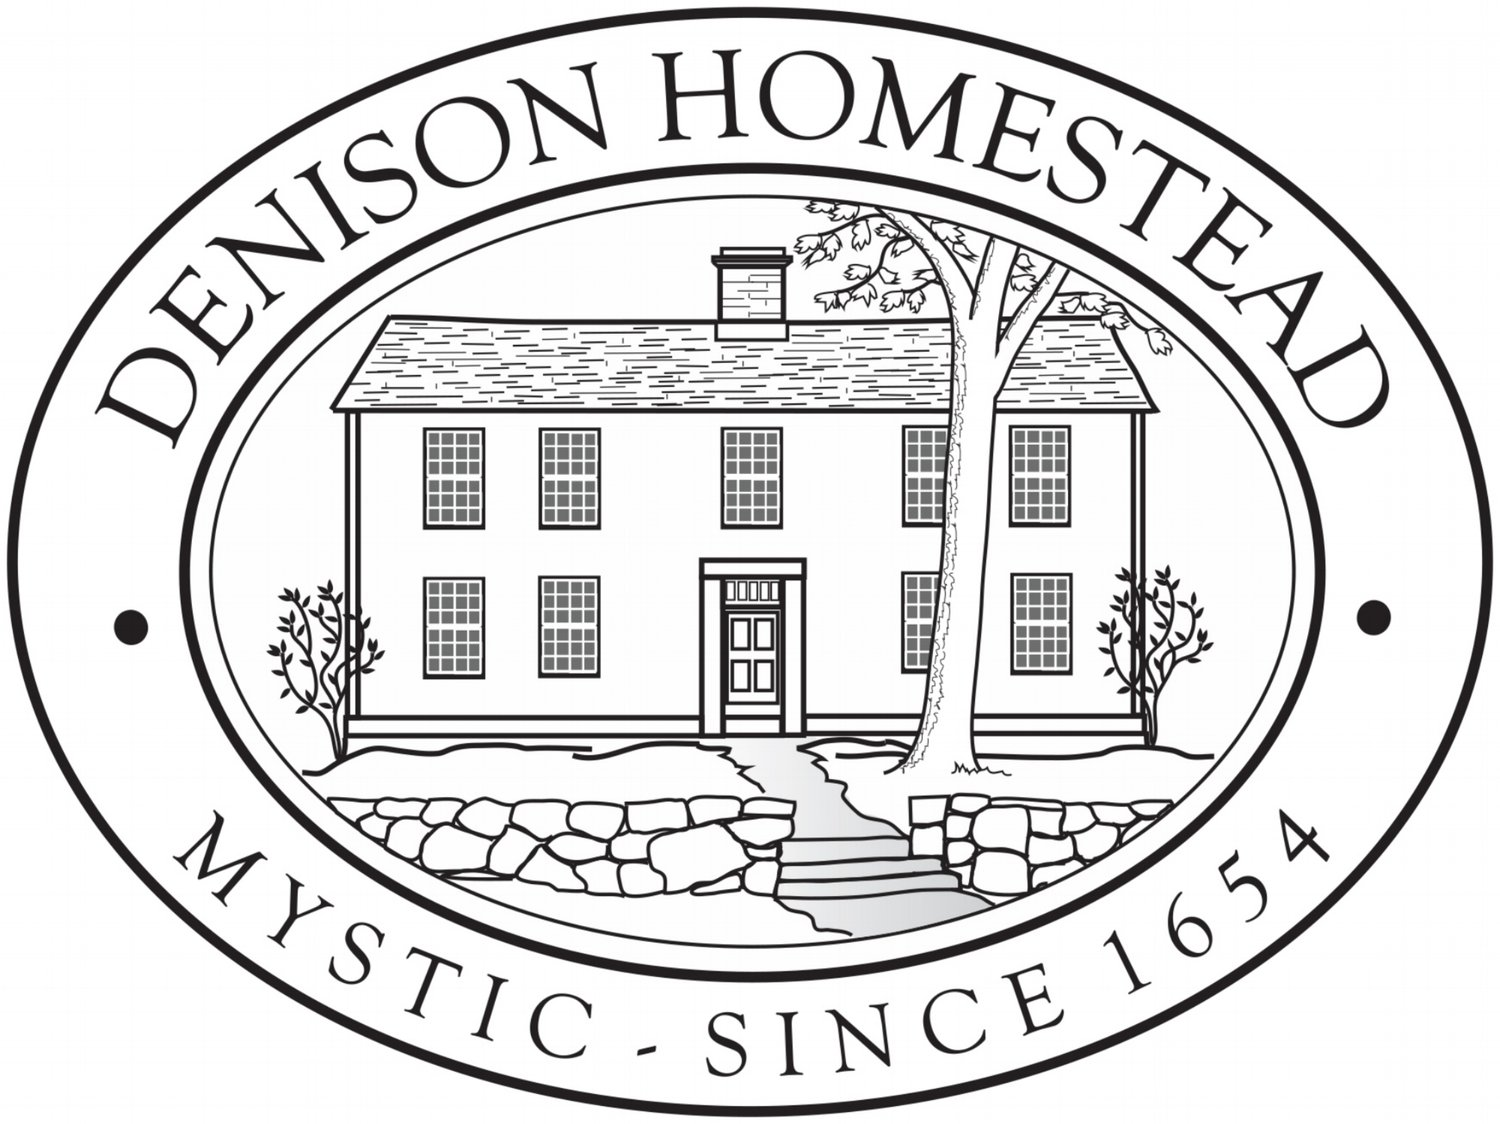 Denison Homestead Museum